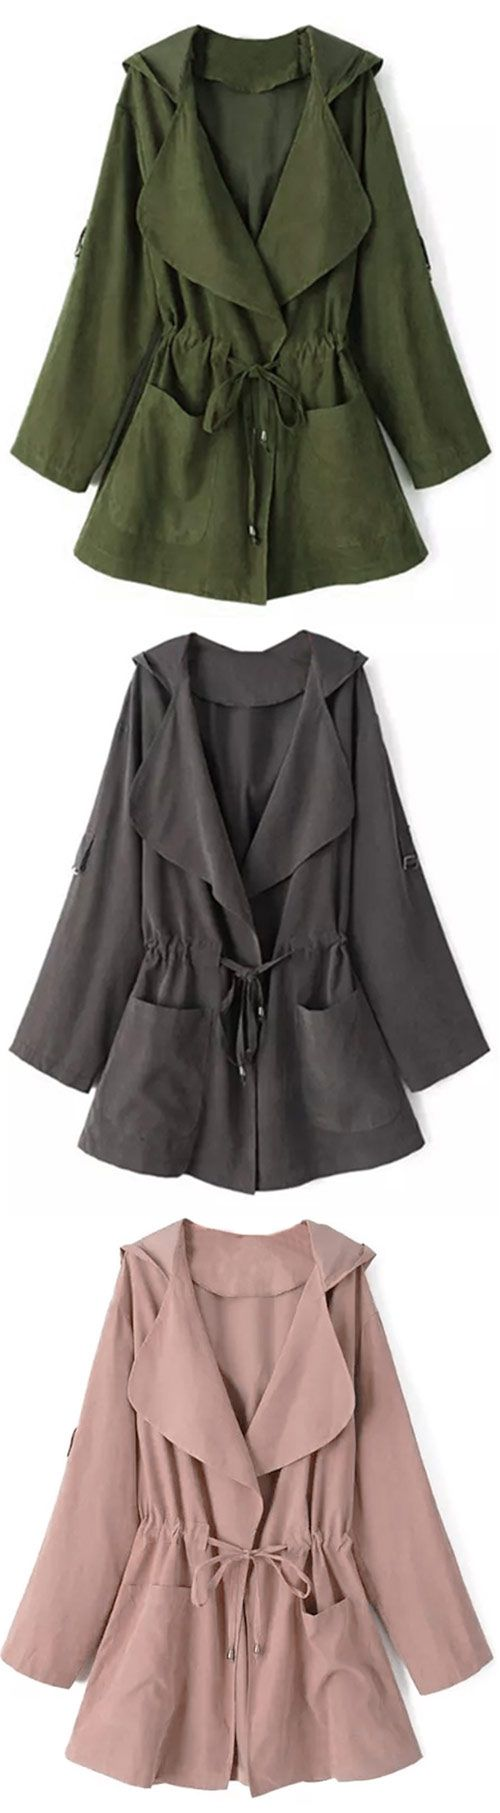 $24.99 for your must-have & easy return! Being your own knight, girls! The hooded coat with long sleeve and drawstring and open front looks cute, bright and brave! One glance, and you know it should belong to you. Get more surprise at Cupshe.com !